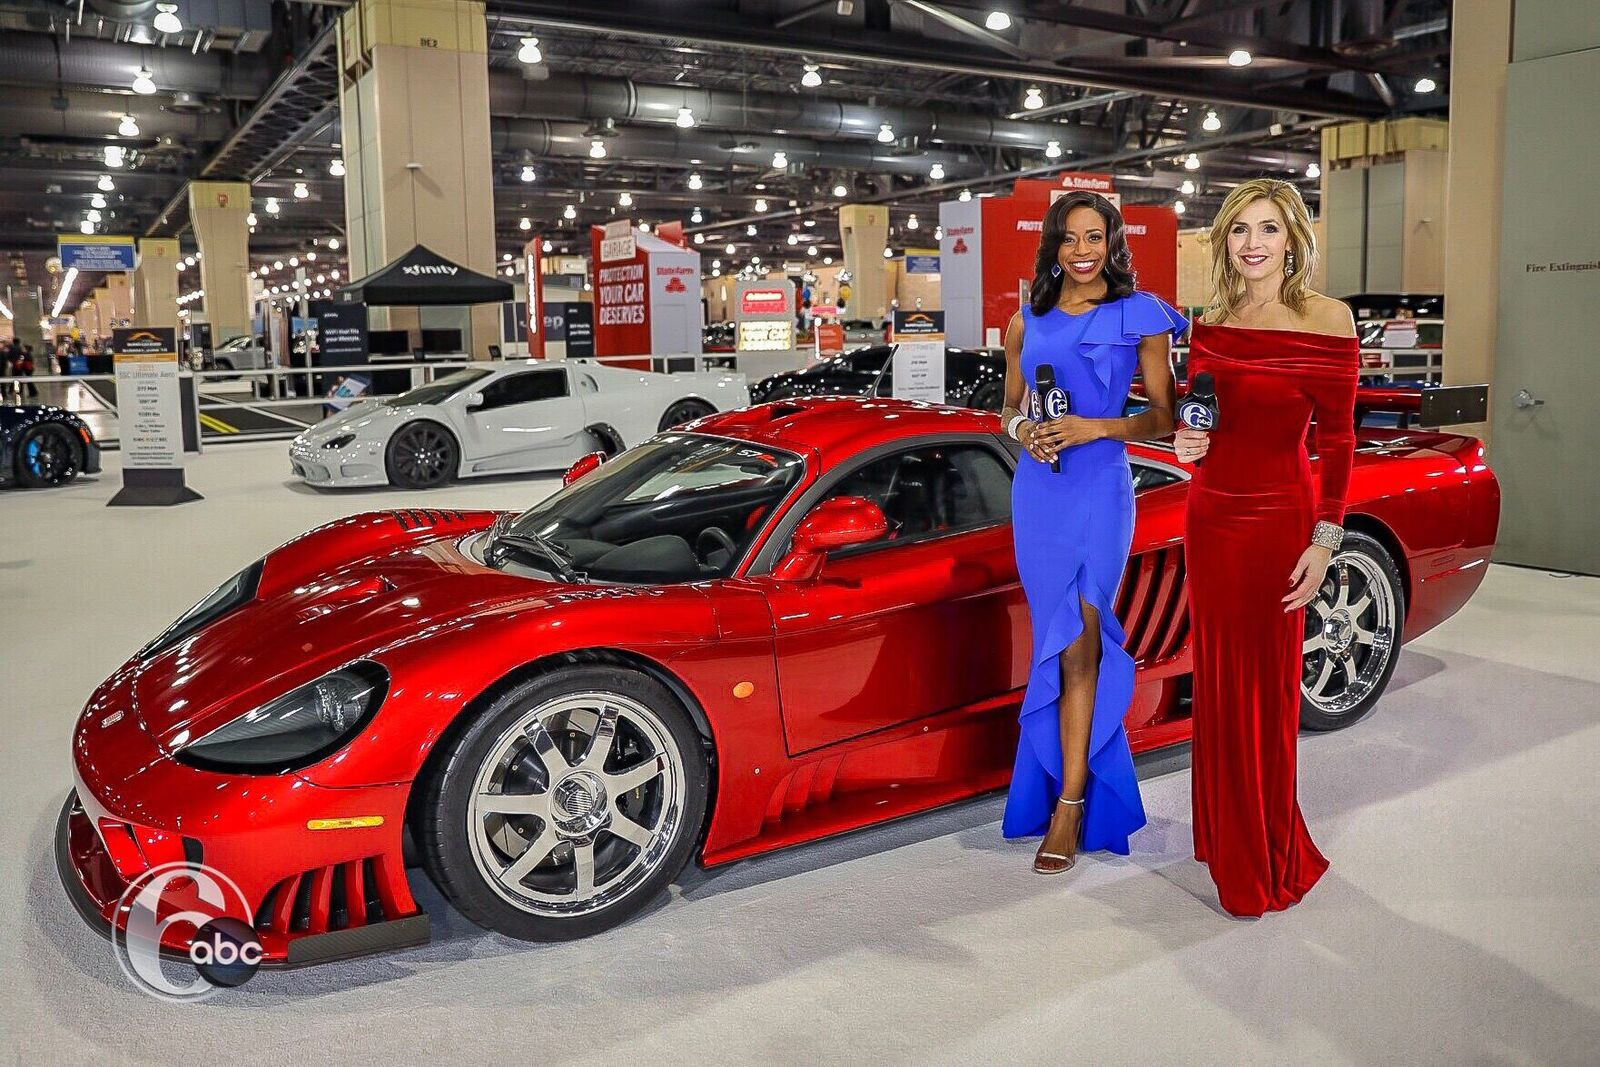 PHOTOS Philadelphia Auto Show Black Tie Tailgate Abccom - Philadelphia car show 2018